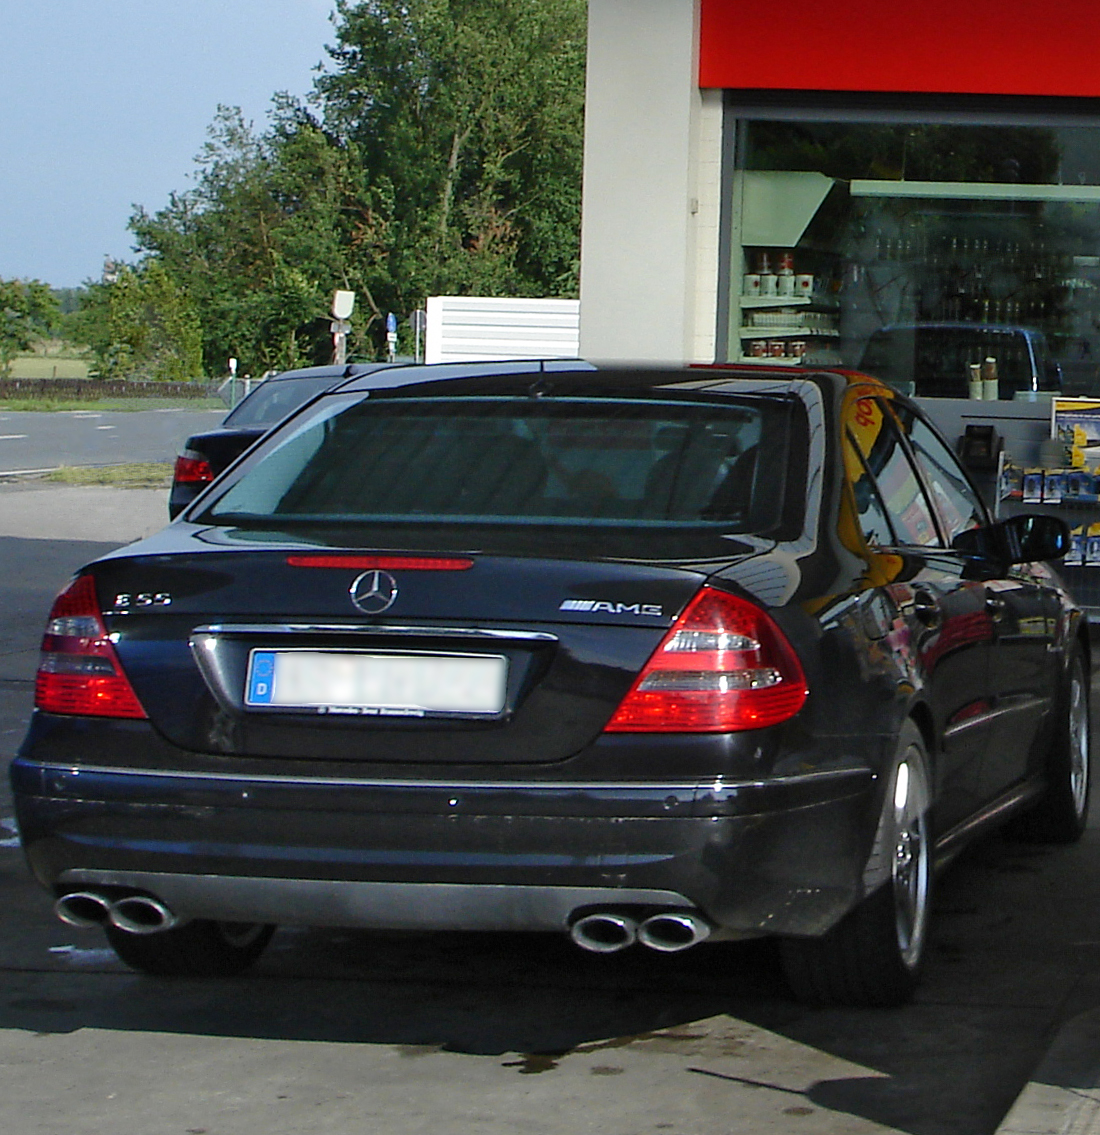 File:Mercedes E55 AMG W211 rear.jpg - Wikimedia Commons